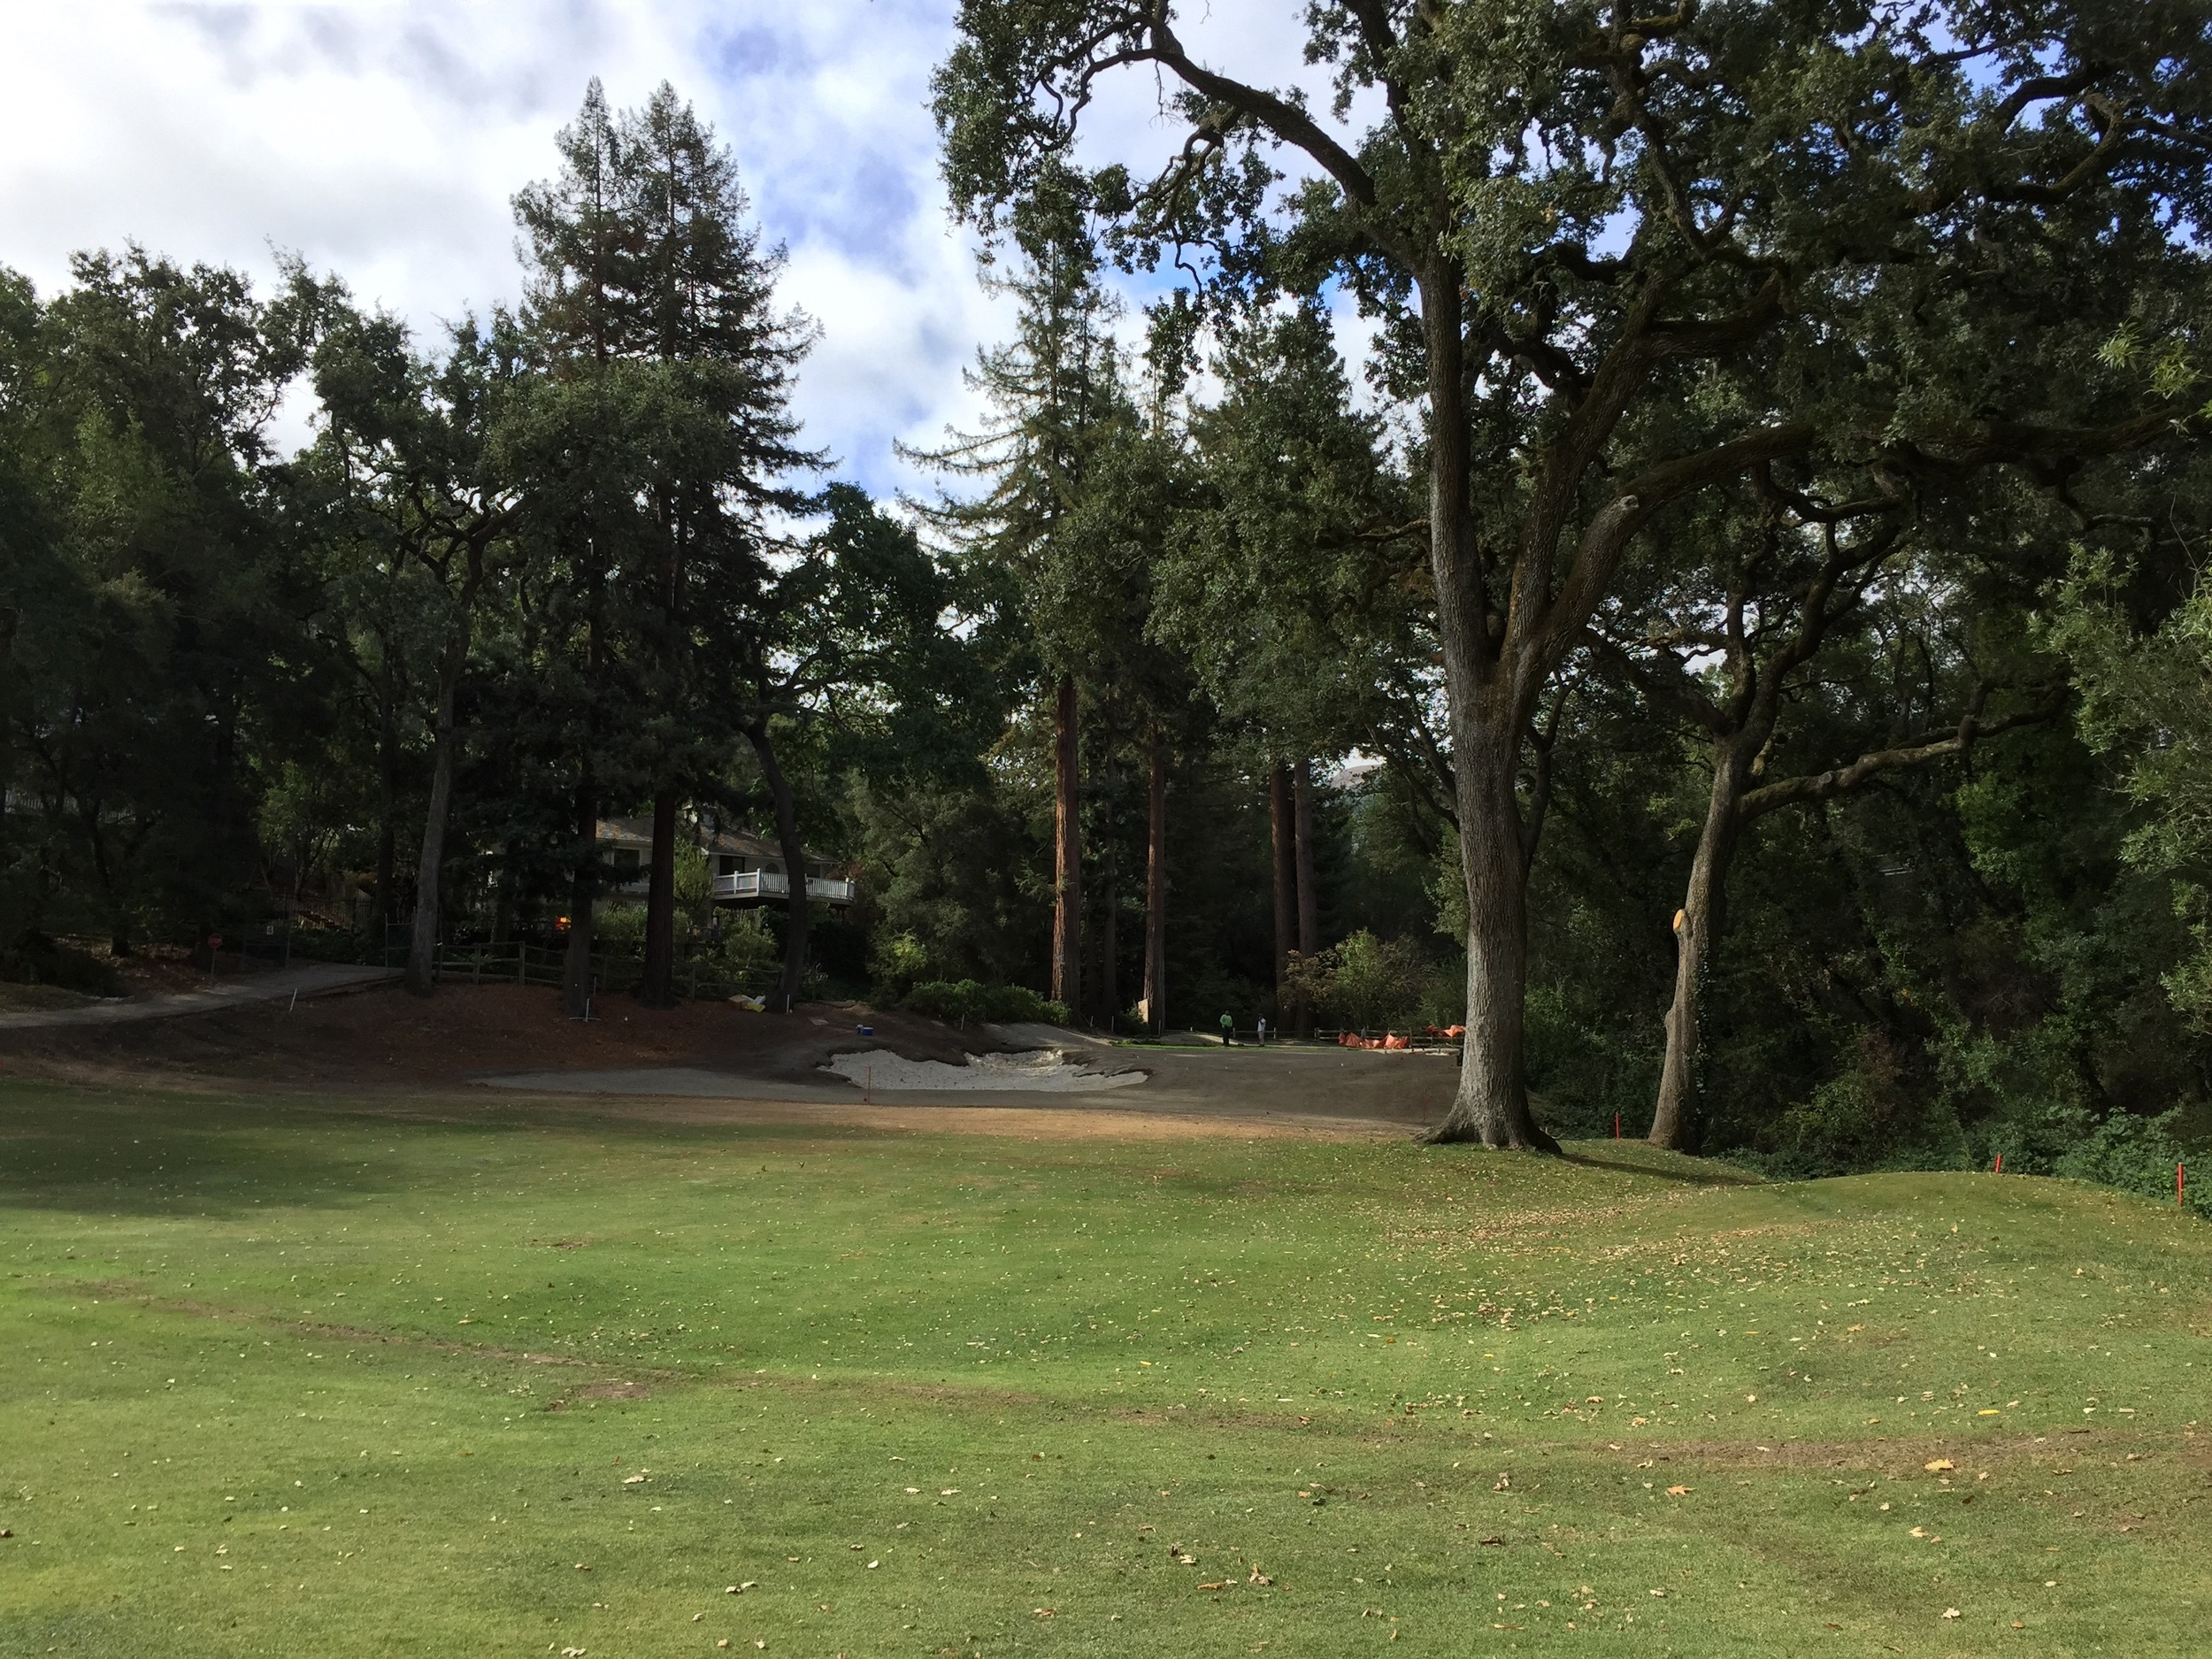 hochstein-design-orinda-cc-hole-10-construction-3.jpg